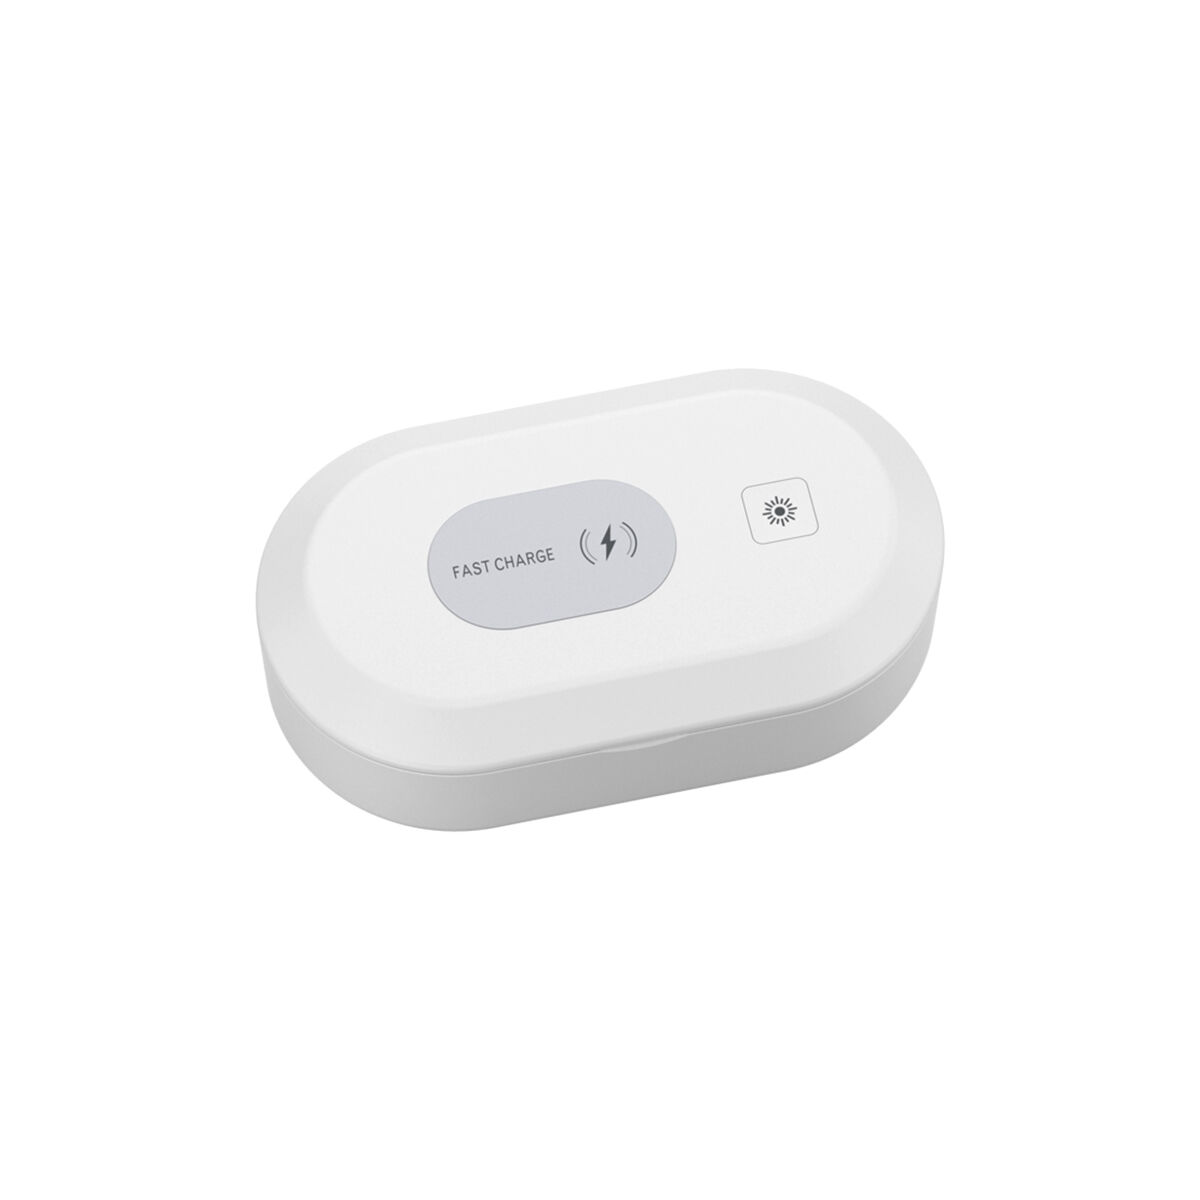 UV Sanitiser Box for Smart Phones